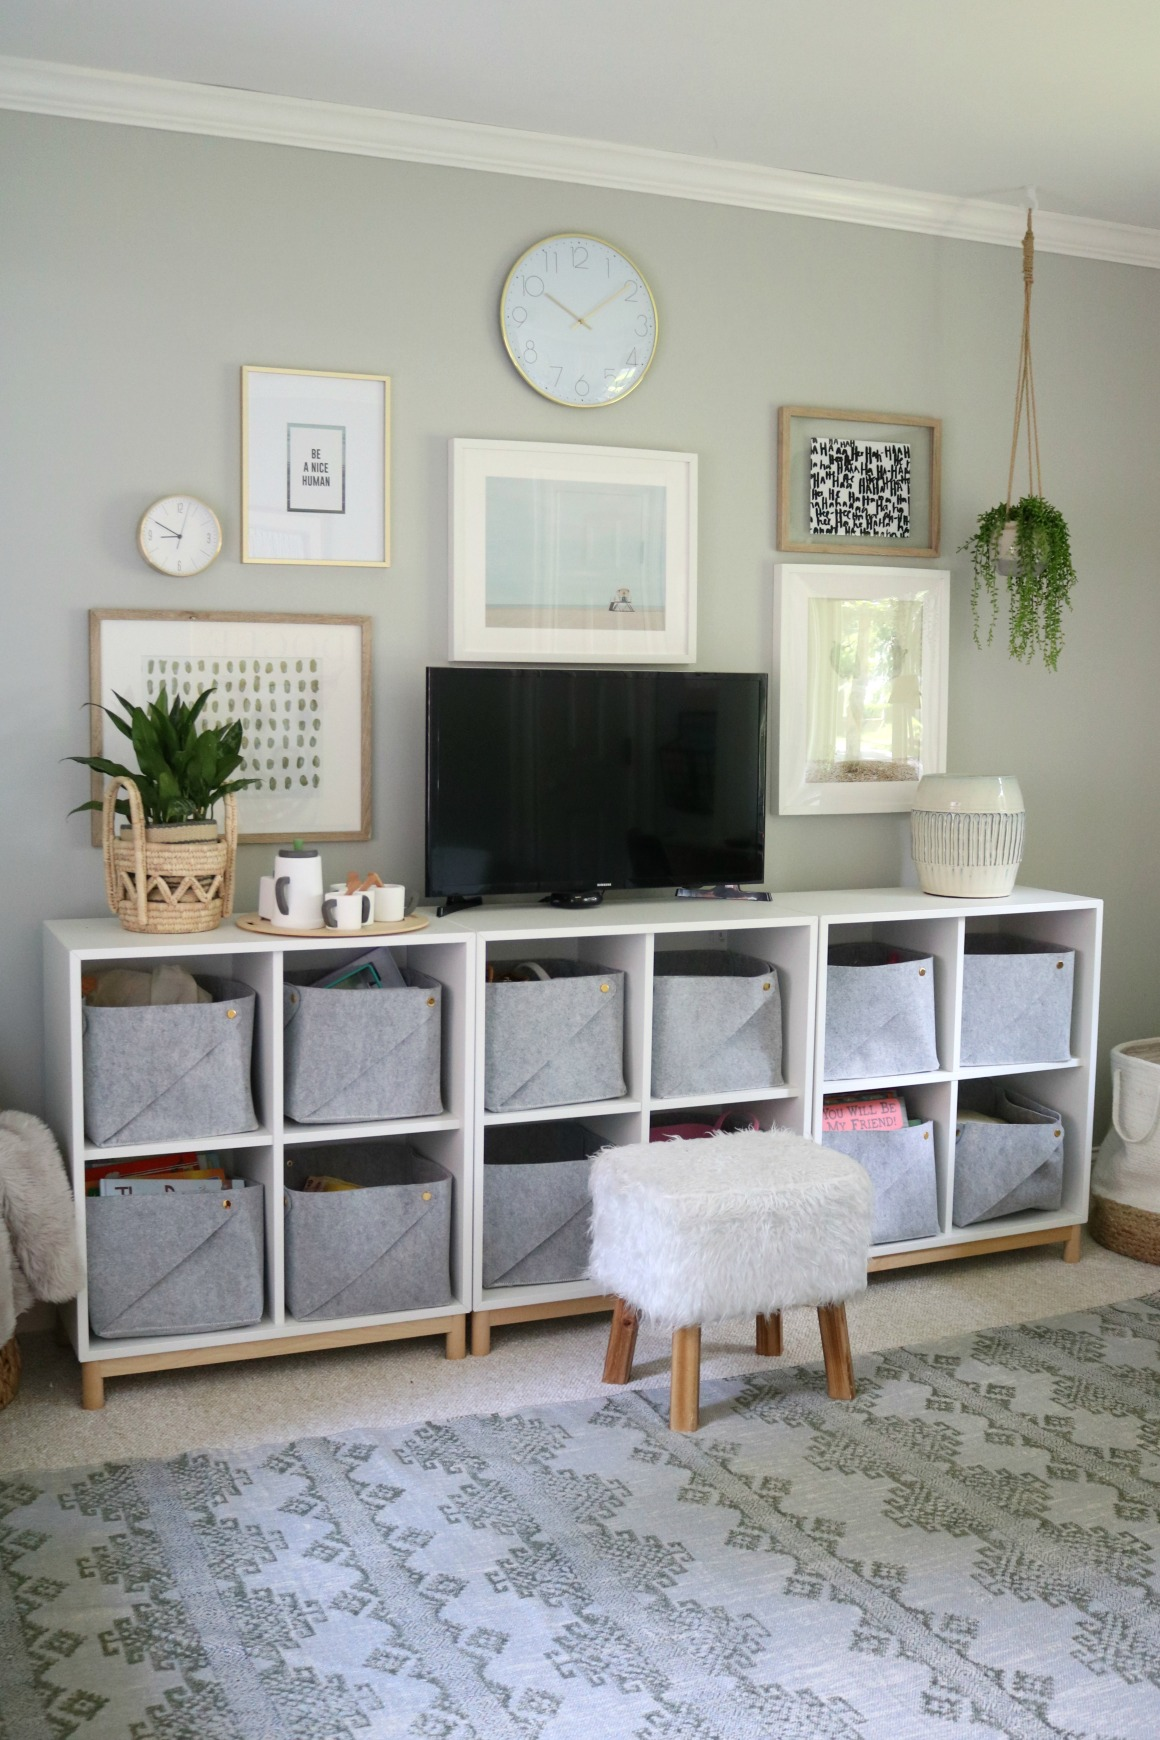 House Built By Thrifted Decor And Five Tips For Thrifting Nesting With Grace